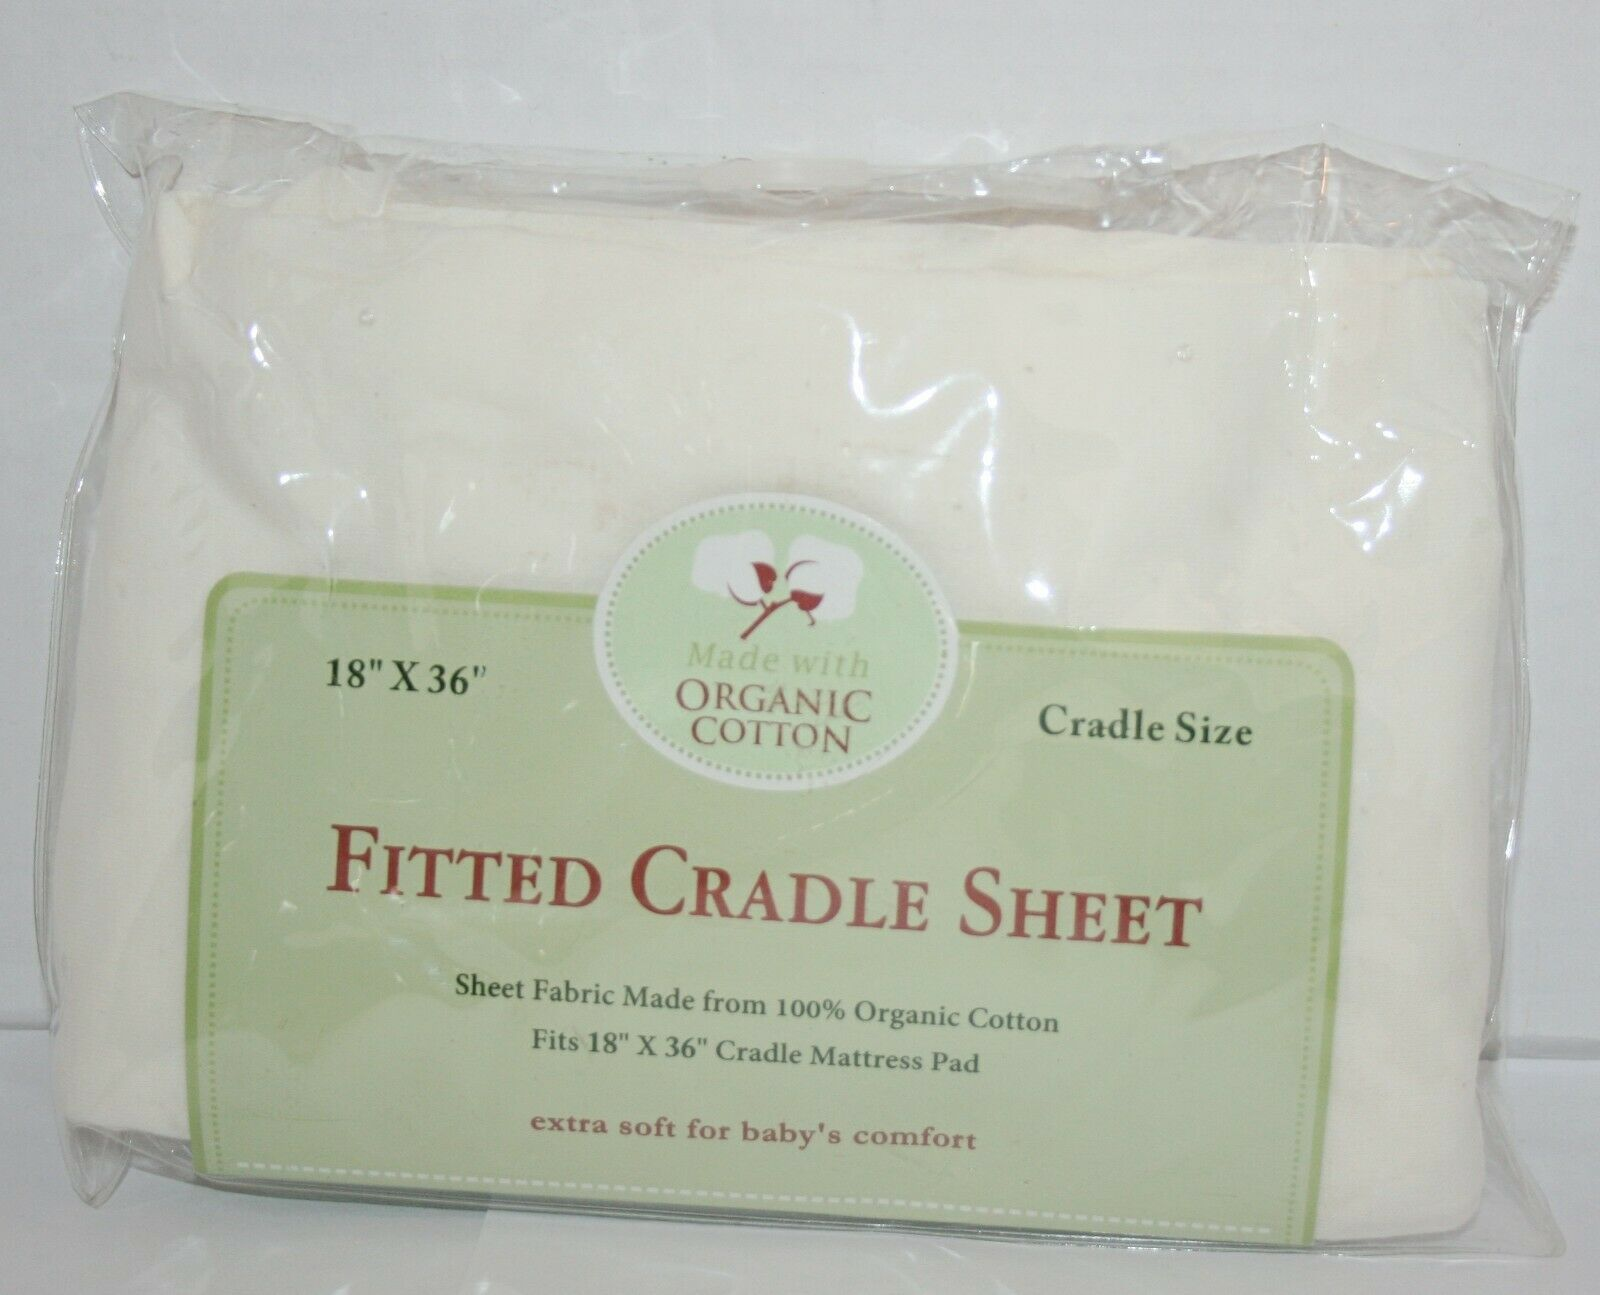 Organic Cotton Knitted Cradle Sheet